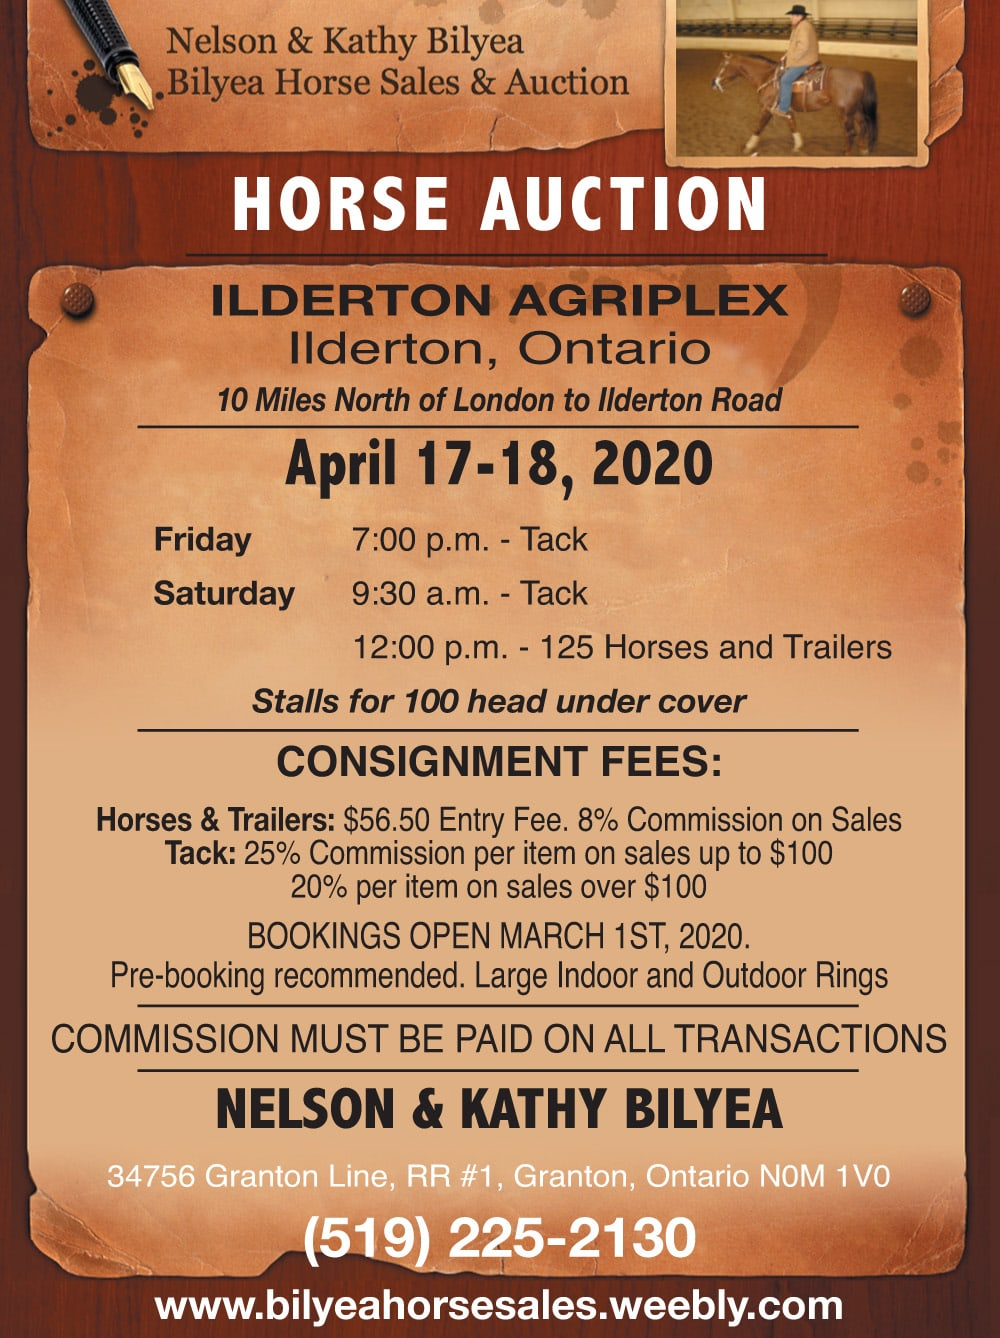 Bilyea Horse Auction